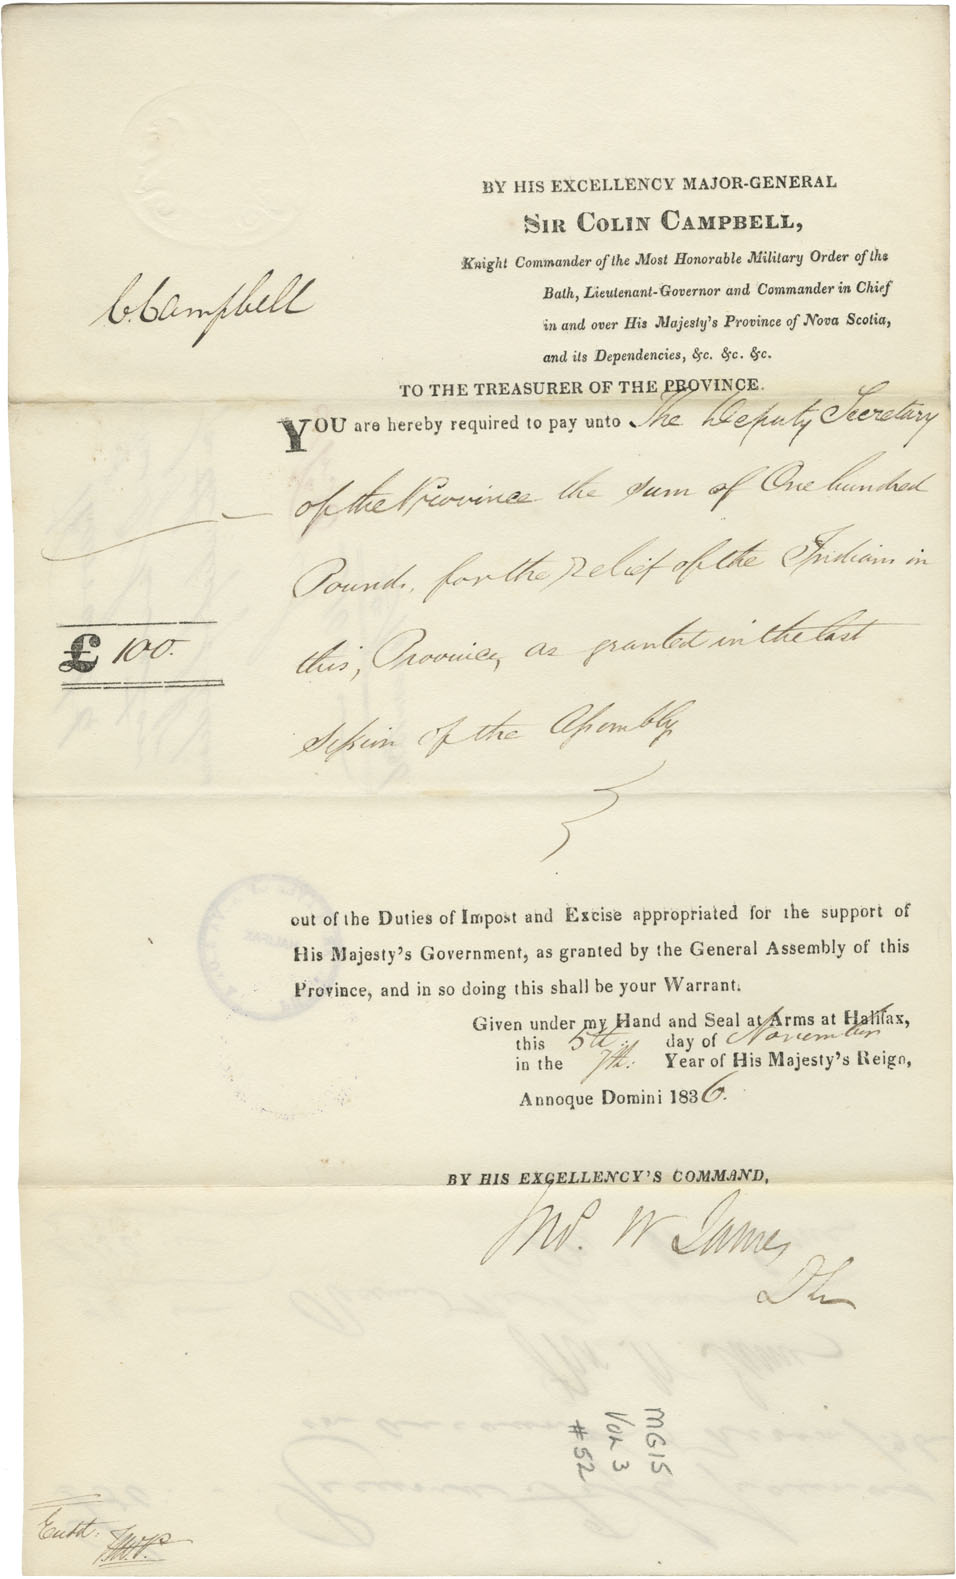 Warrant from the Provincial Secretary for £100-0-0 for the relief of Mi'kmaq, from Sir Colin Campbell.